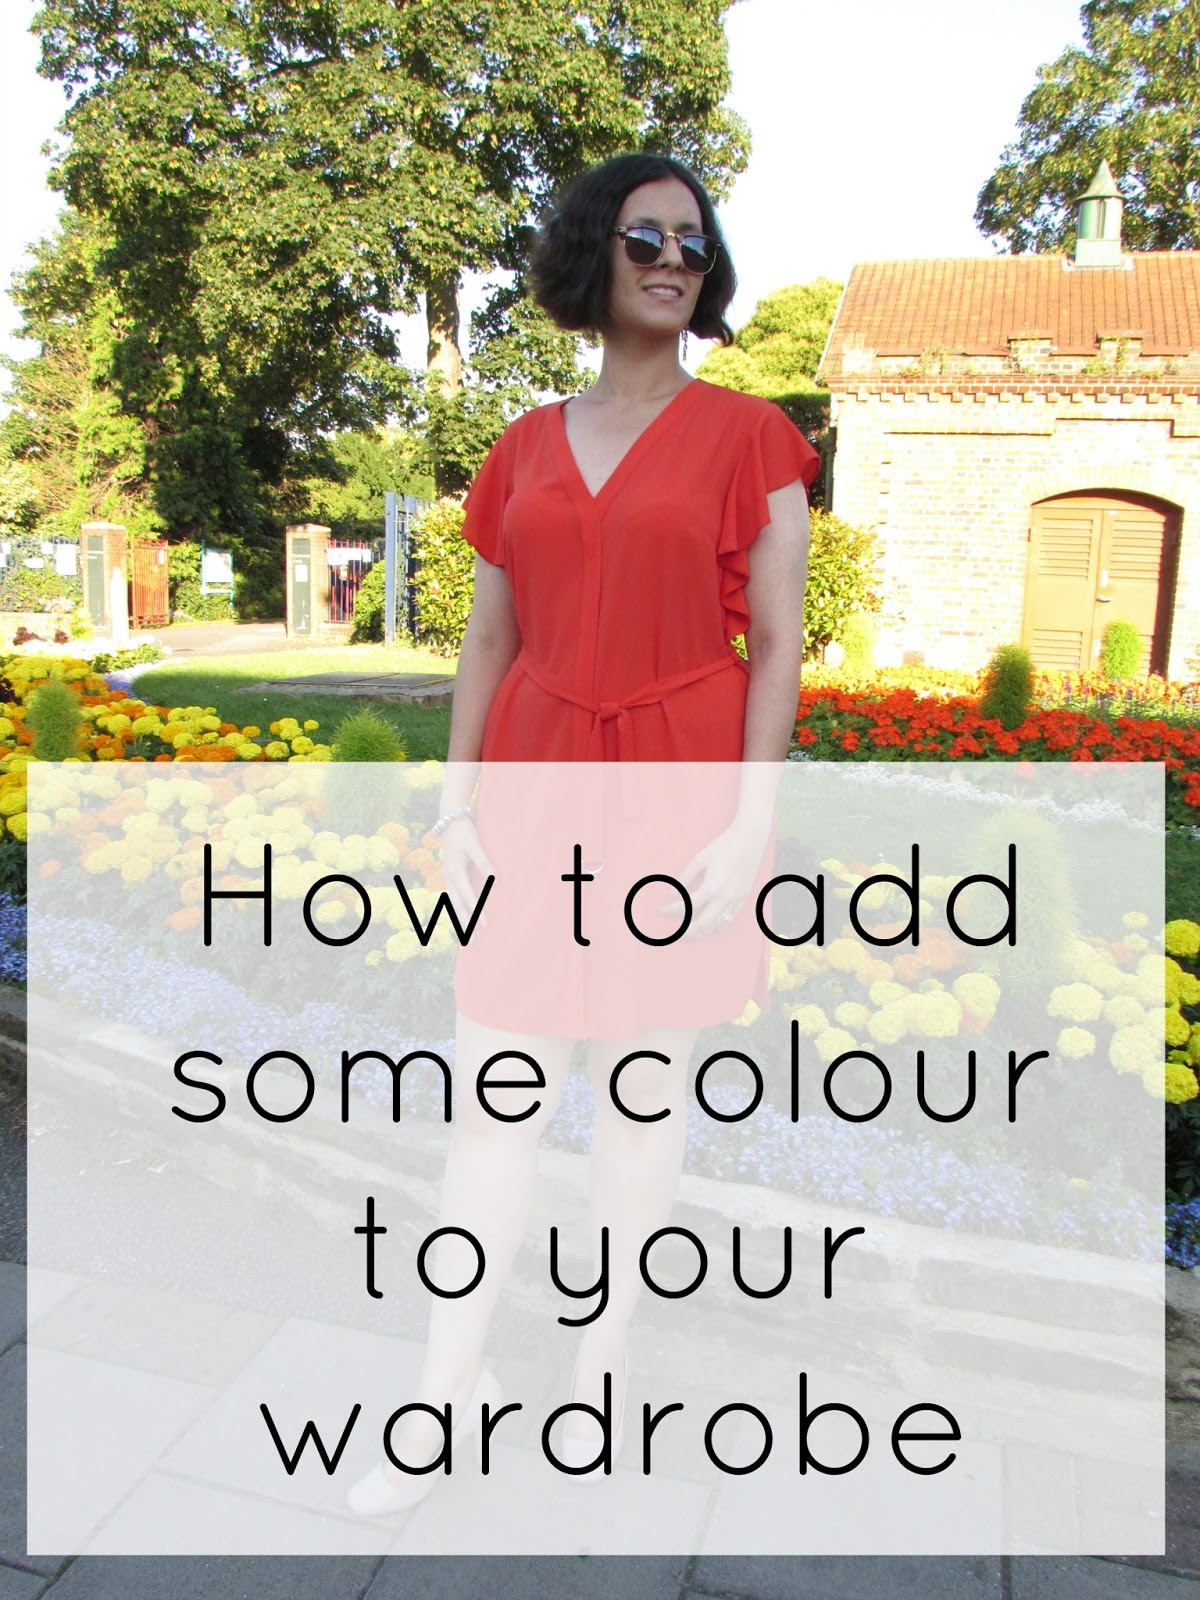 How to inject some colour to your wardrobe